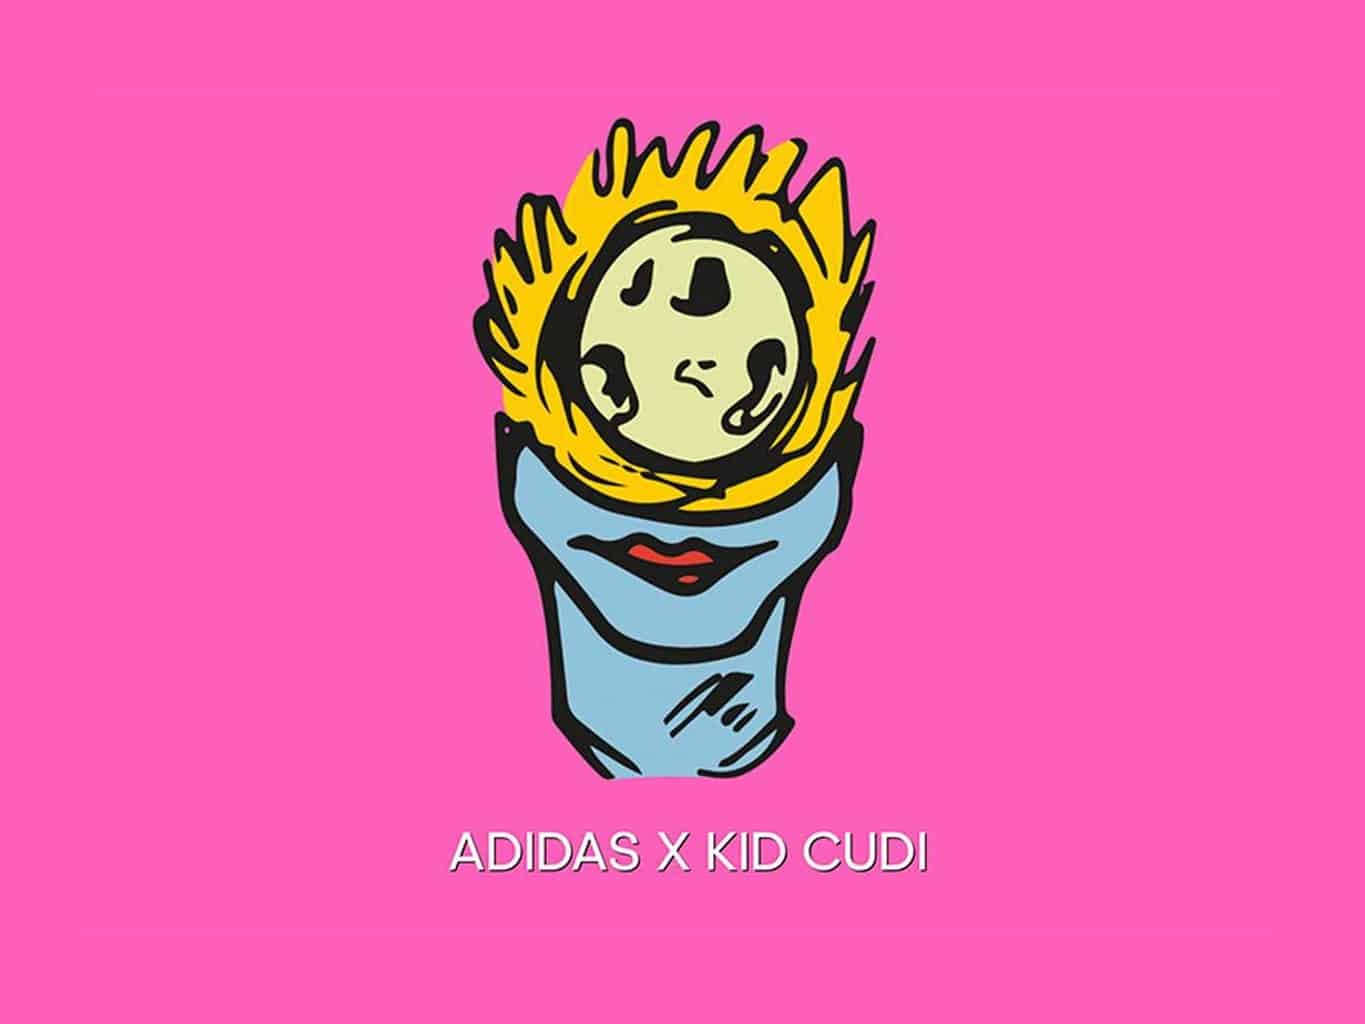 Just Announced The New Kid Cudi X Adidas Collab